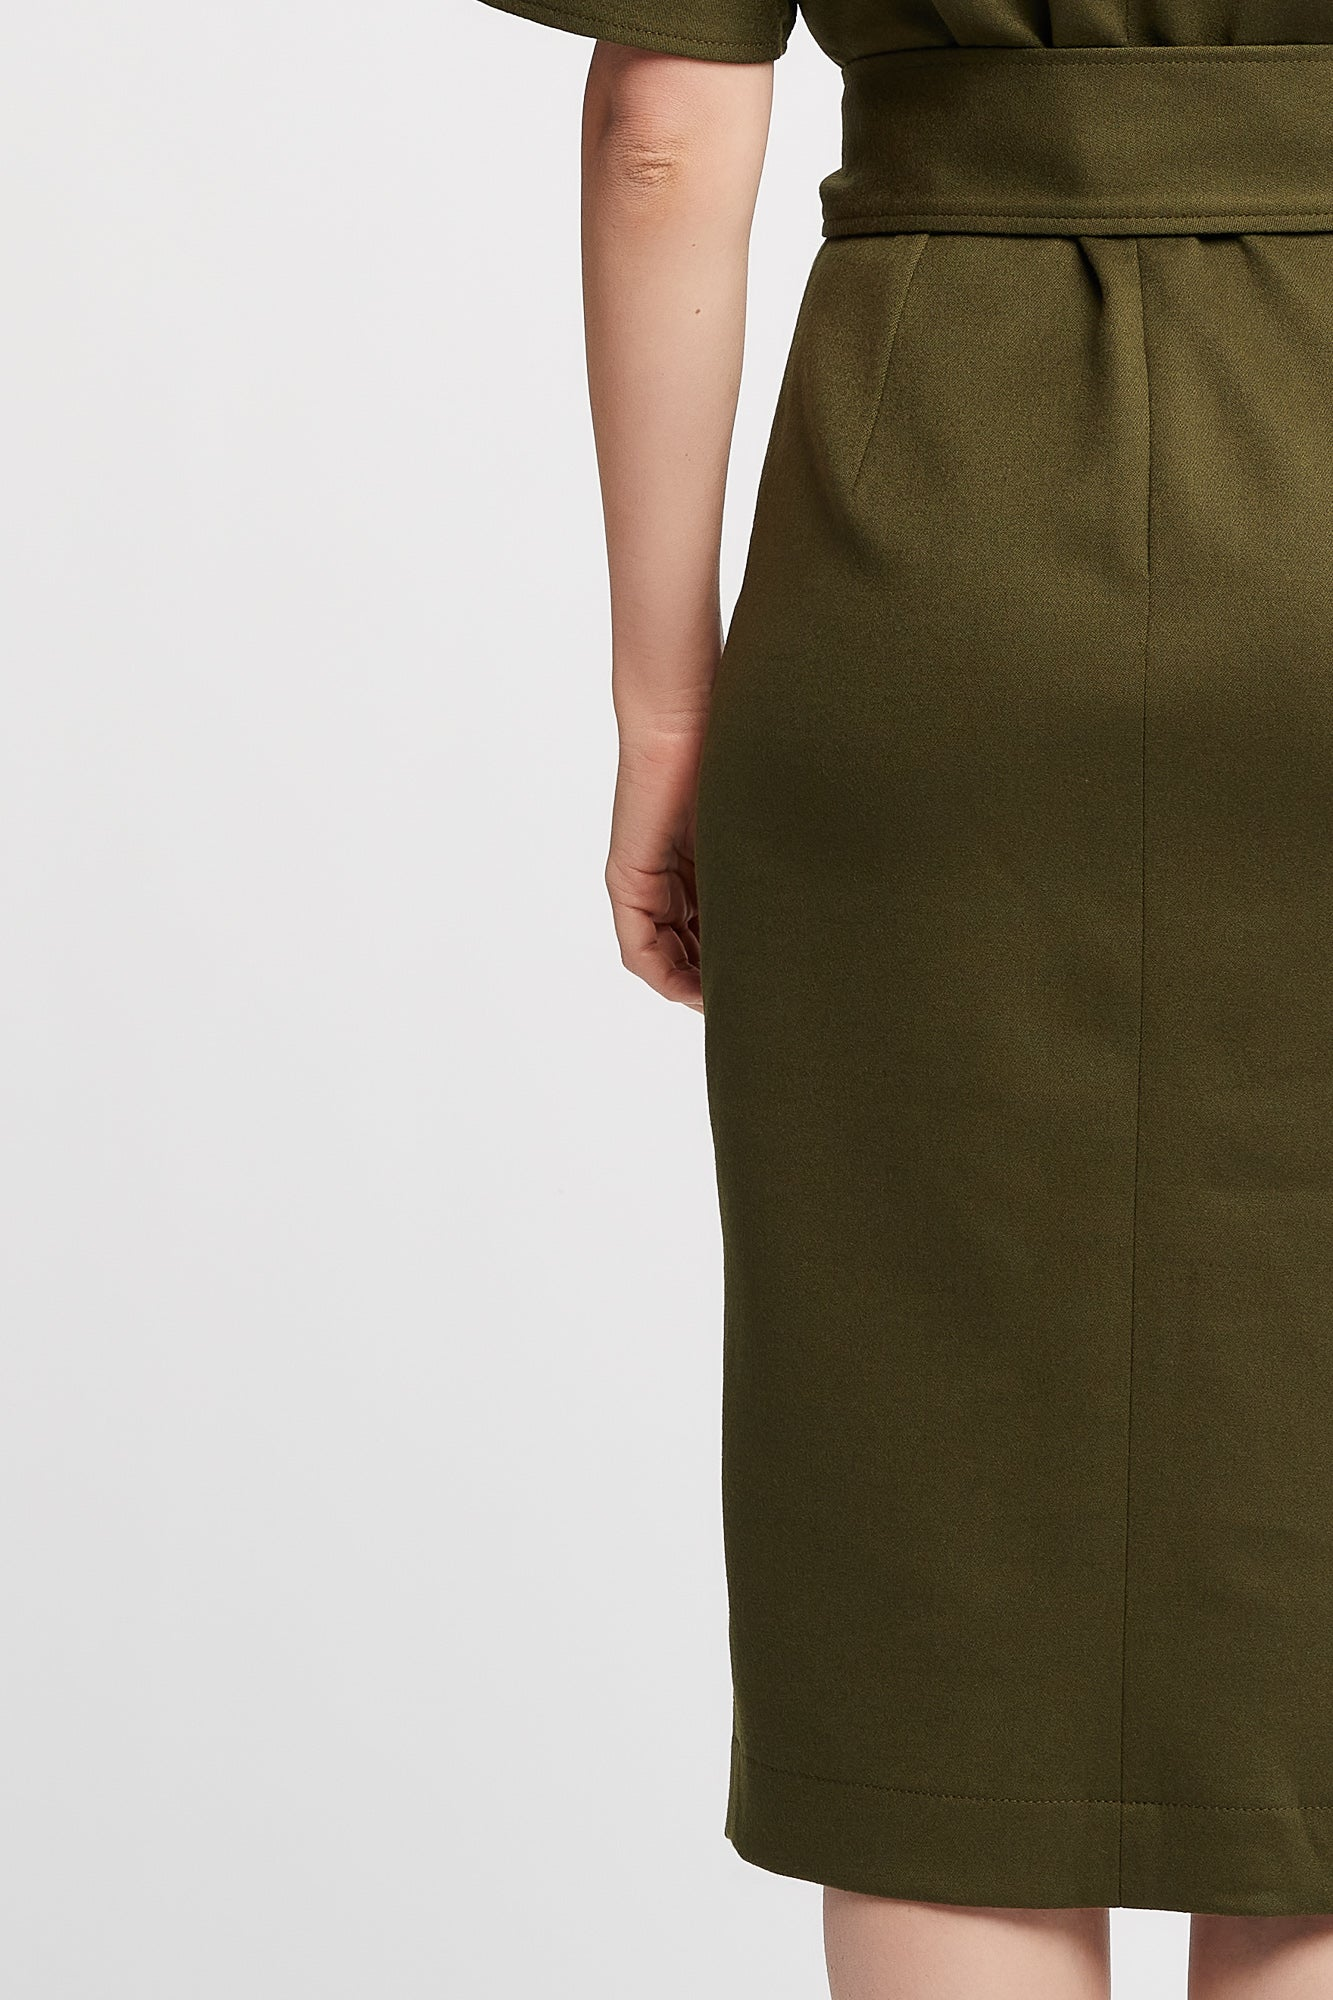 Rachel Short Sleeve Work and Cocktail Dress in Olive with Belt